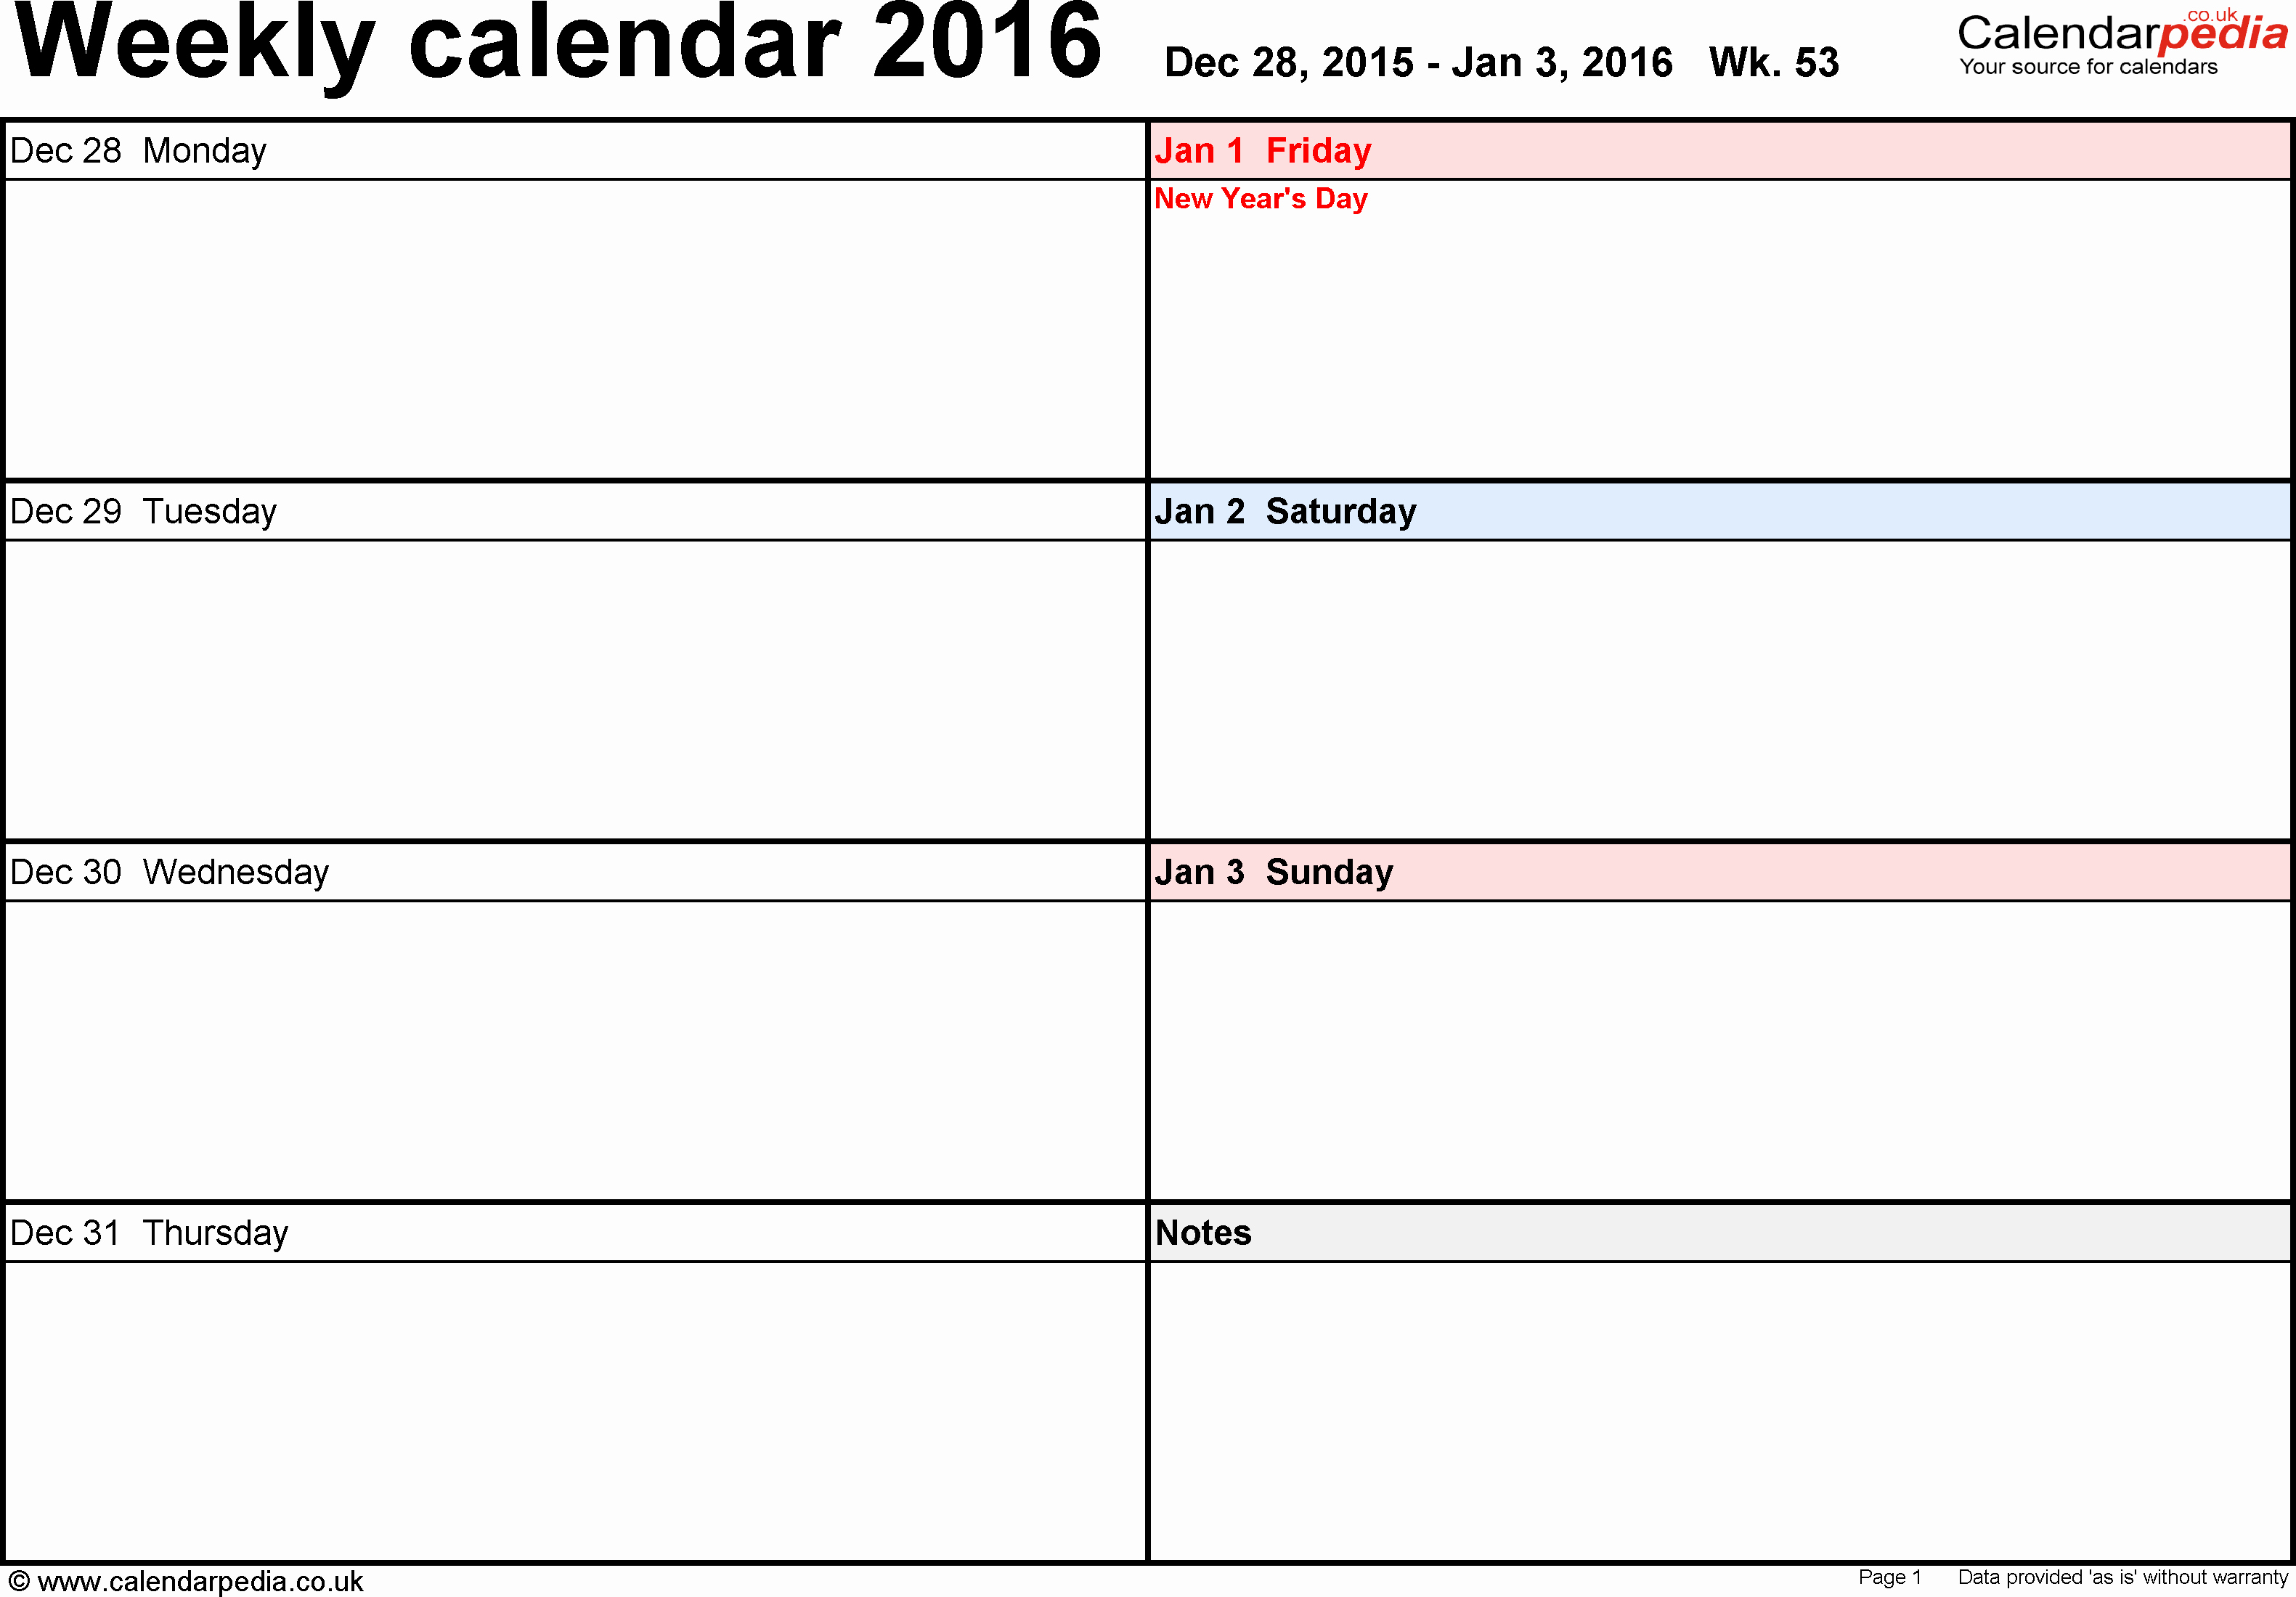 Weekly Calendar 2016 Uk Free Printable Templates for Word